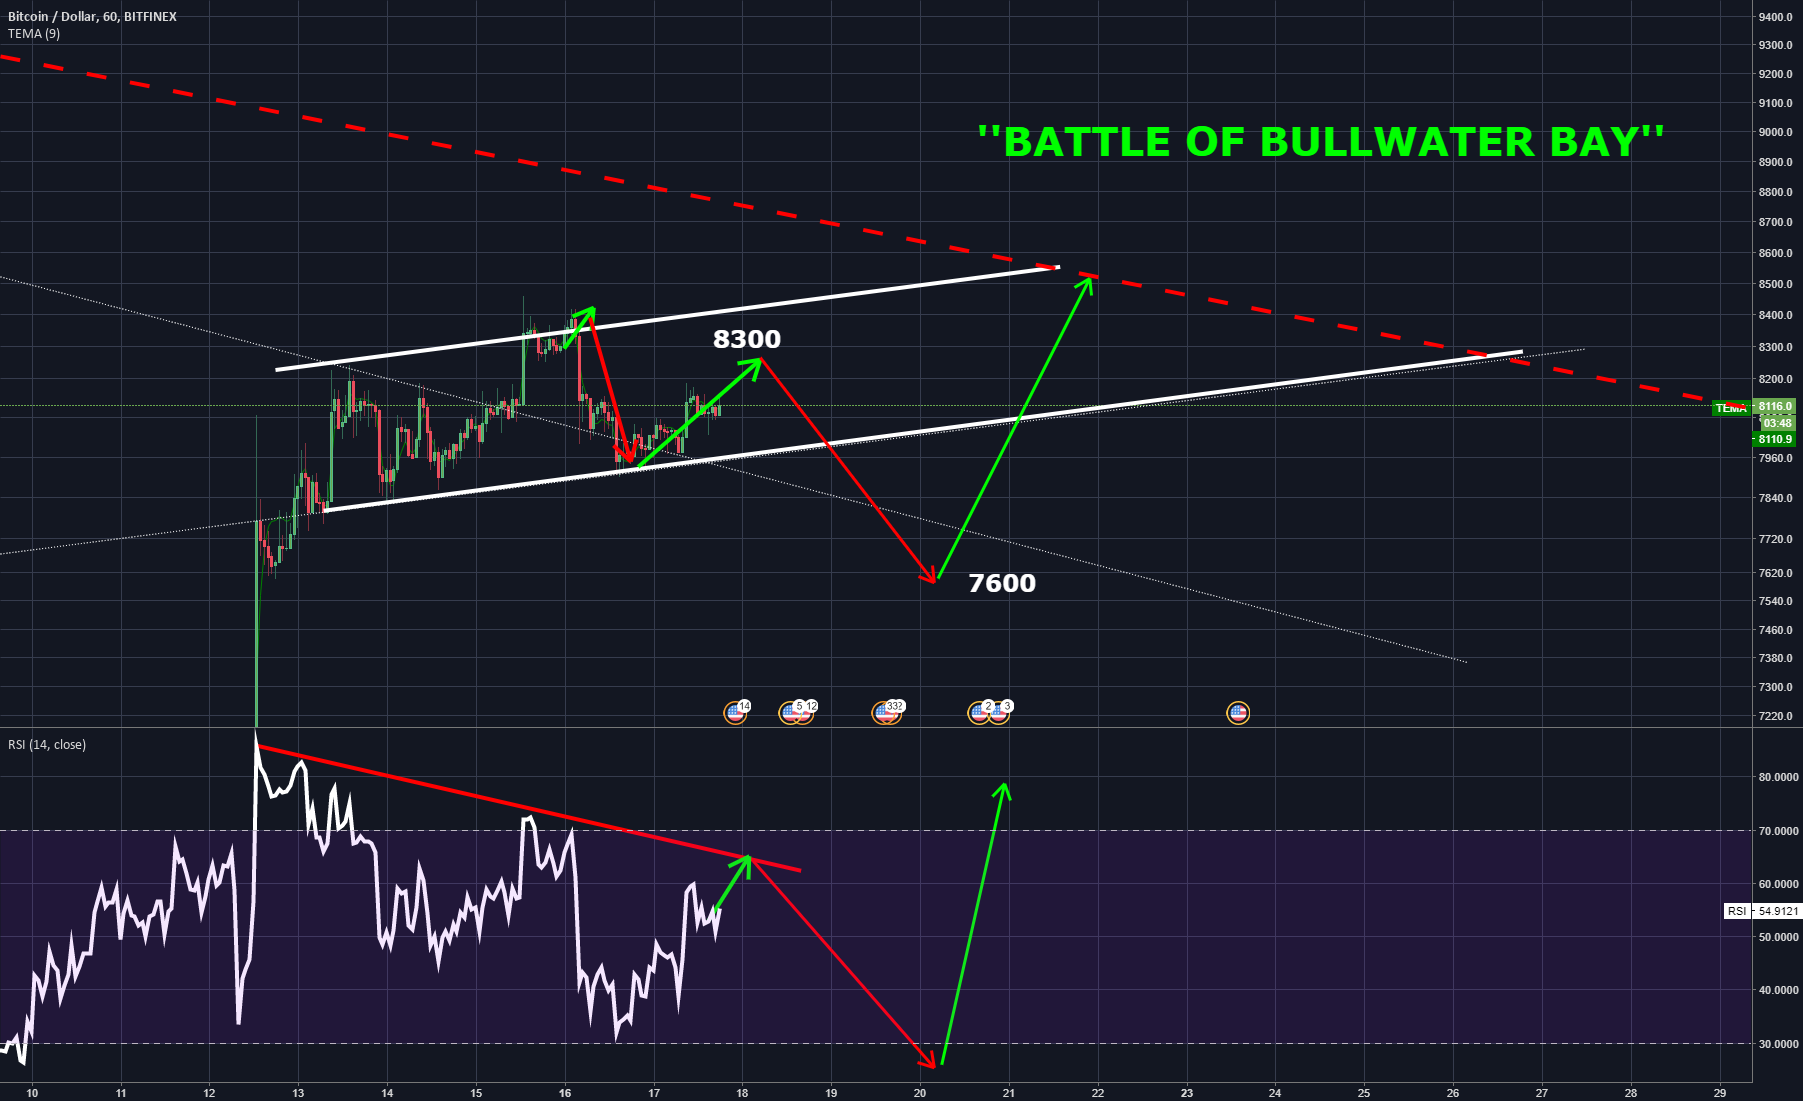 BITCOIN BREAKOUT ATTEMPT ''THE BATTLE OF BULLWATER BAY''